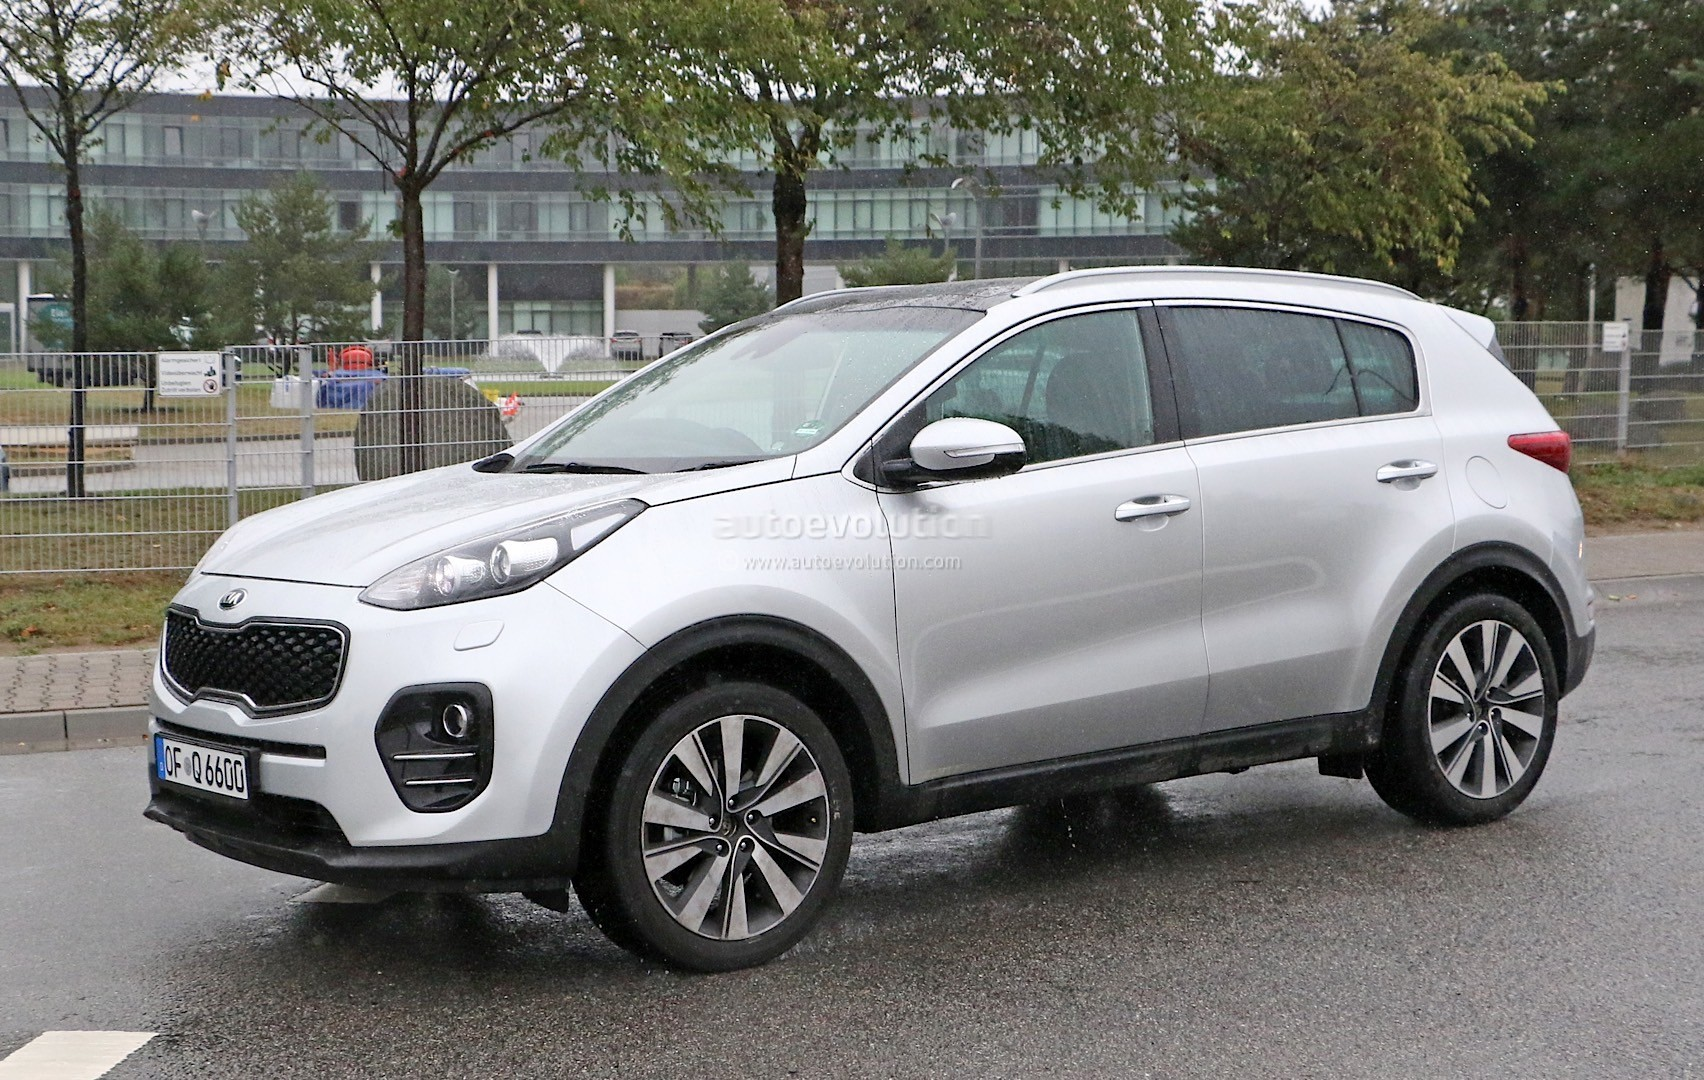 2016 kia sportage spotted camouflage free looks even. Black Bedroom Furniture Sets. Home Design Ideas